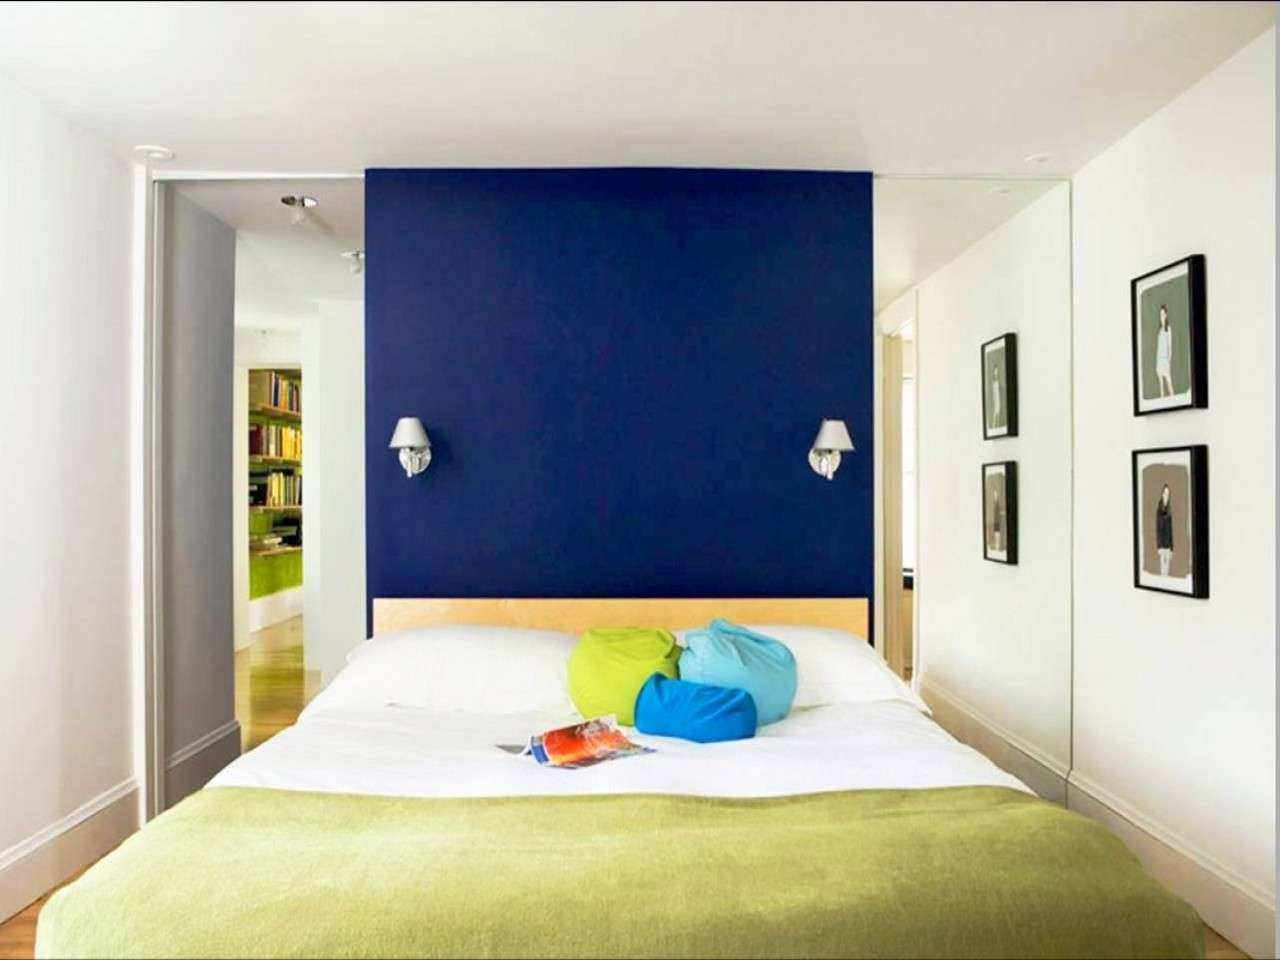 Pool Bedroom Royal Blue Painted Bed Room Bluebedroom Color Ideas Blue Wall Ideas Wall Ideas Bedroom Royal Blue Painted Bed bedroom Bedroom Paint Ideas Blue